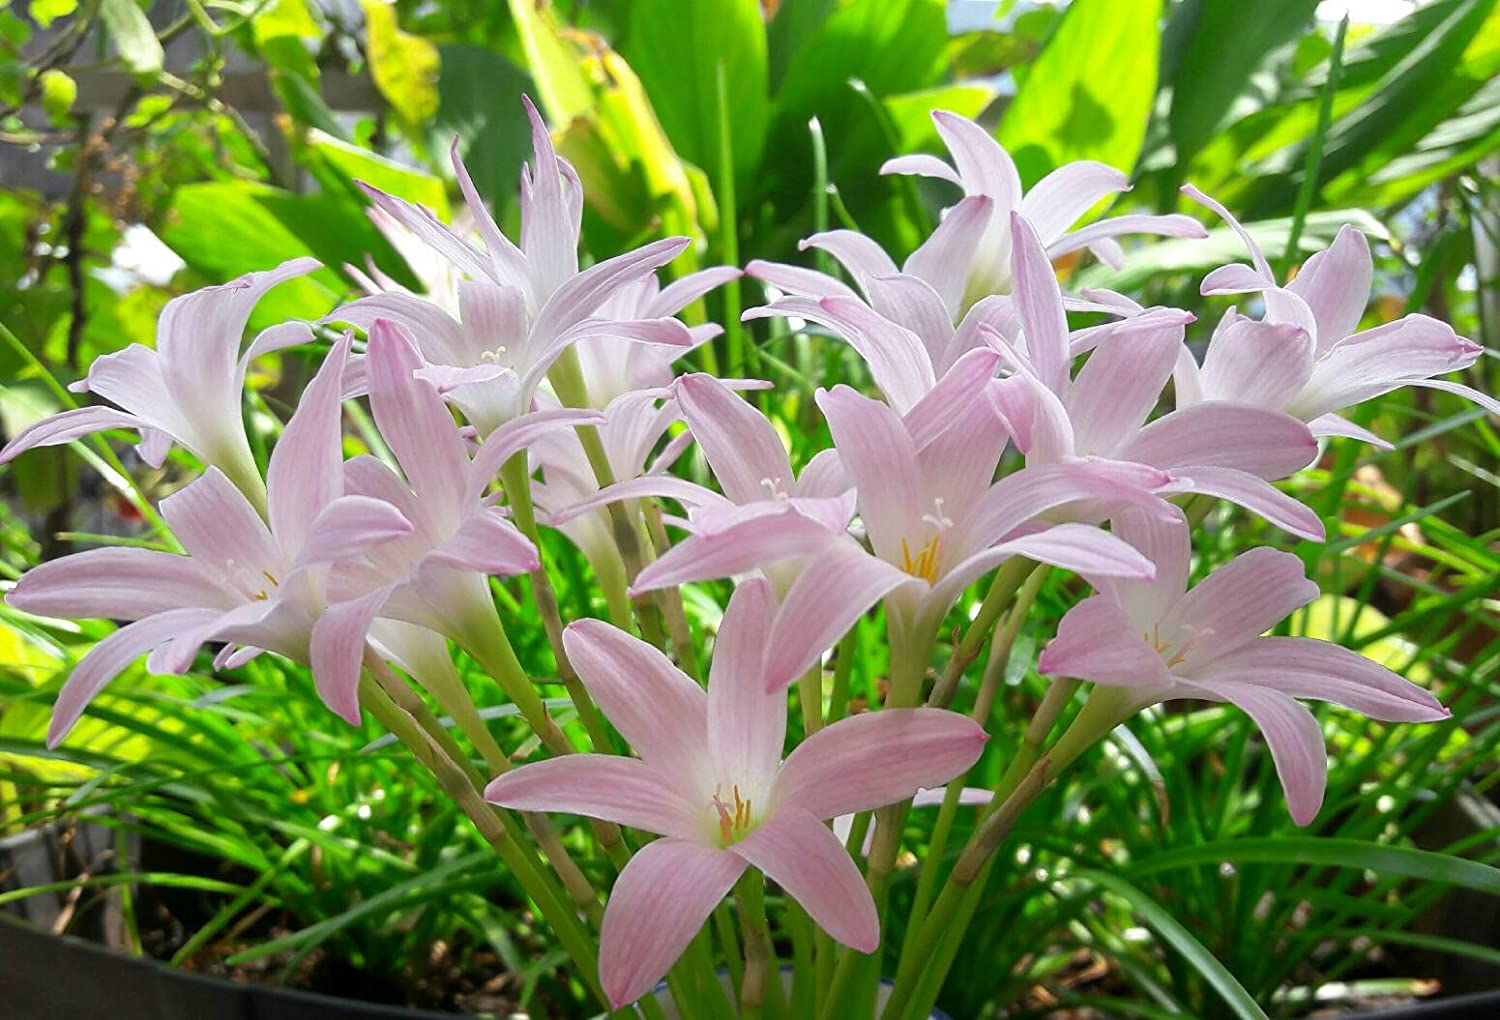 Amazon Rain Lily Bulb Zephyranthes First Love Magic Lily